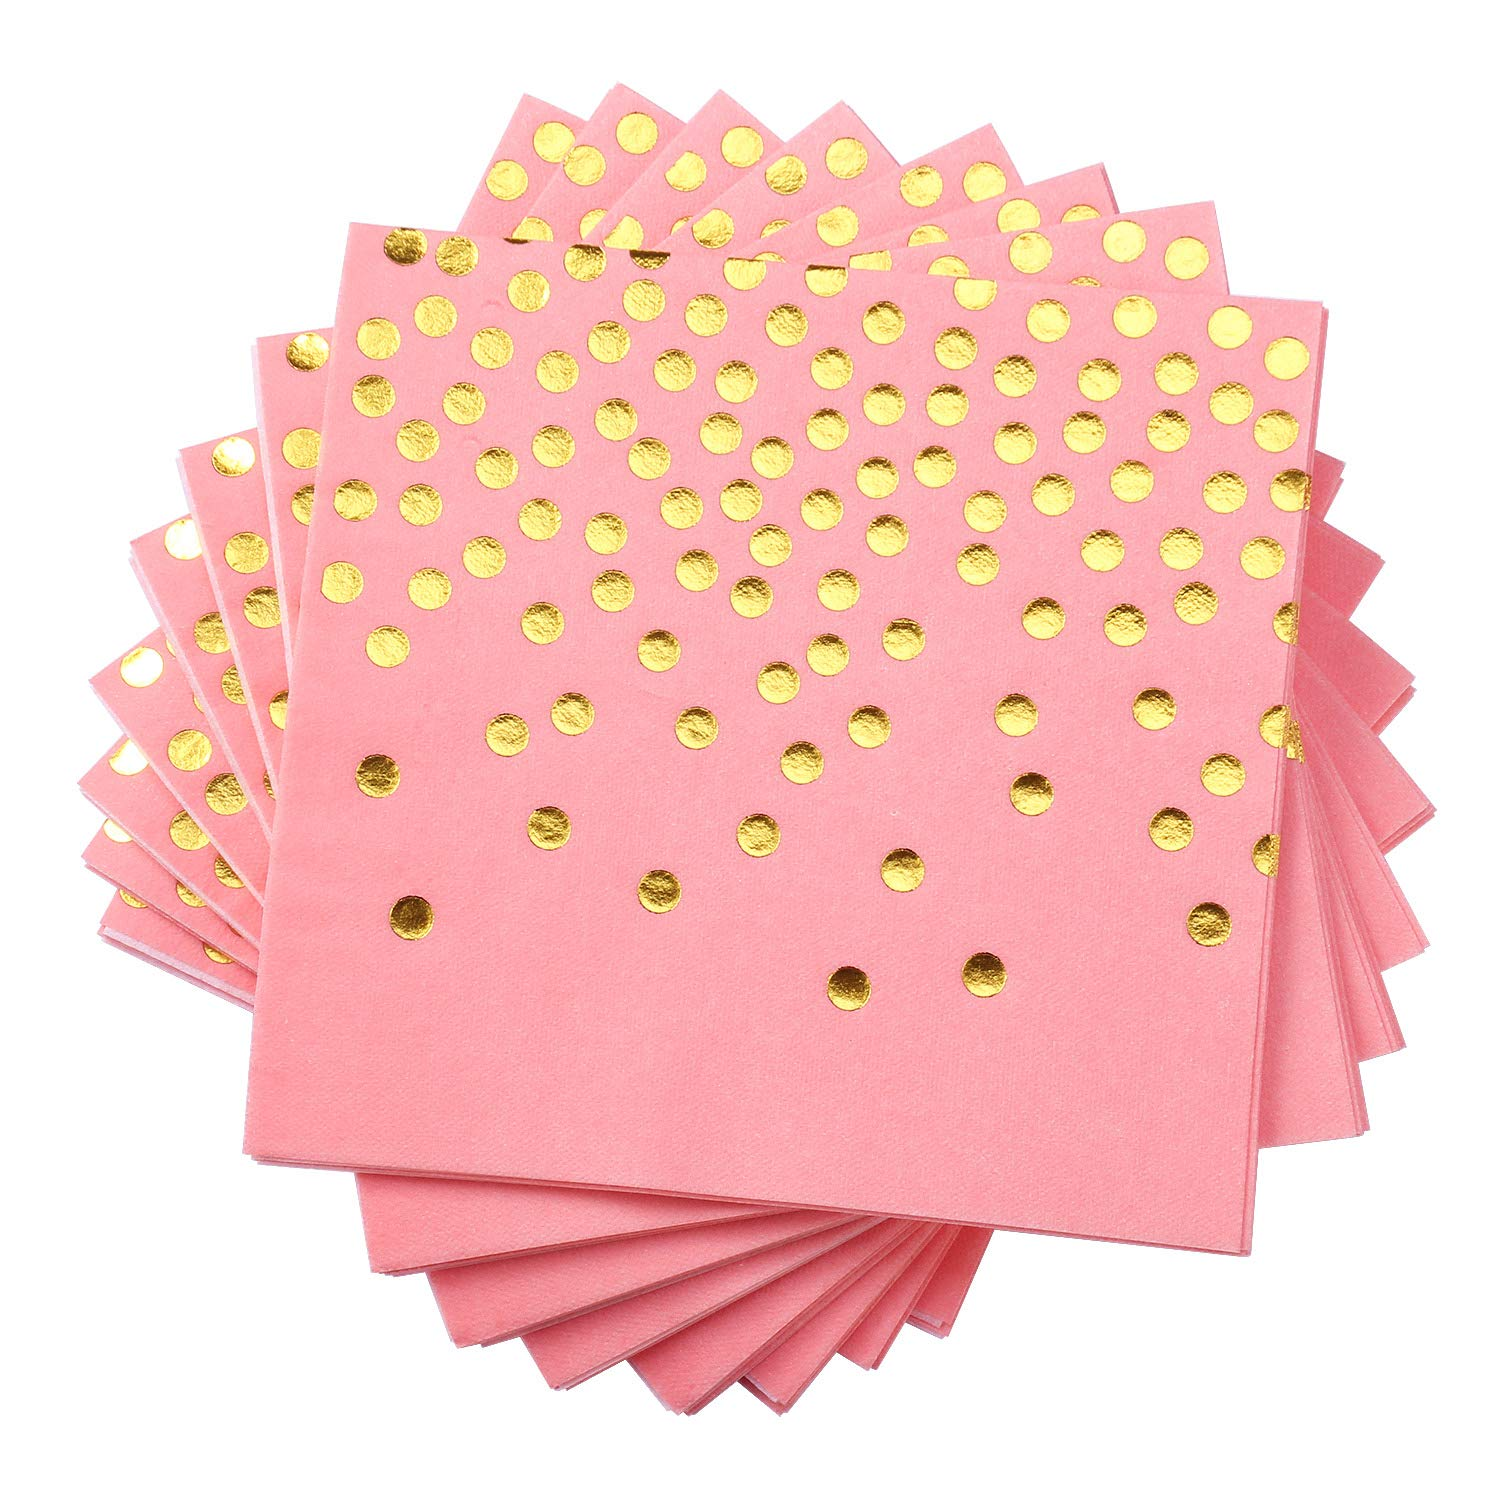 Lekoch Dinner Napkins,Pink with Gold Dots Disposable Cloth Feel Air-Laid Paper Napkin,Stamped with Sparkly Gold Foil Dots,Decoration Paper Hand Towels for Birthday,Party,Banquet,Anniversary,50 Pack